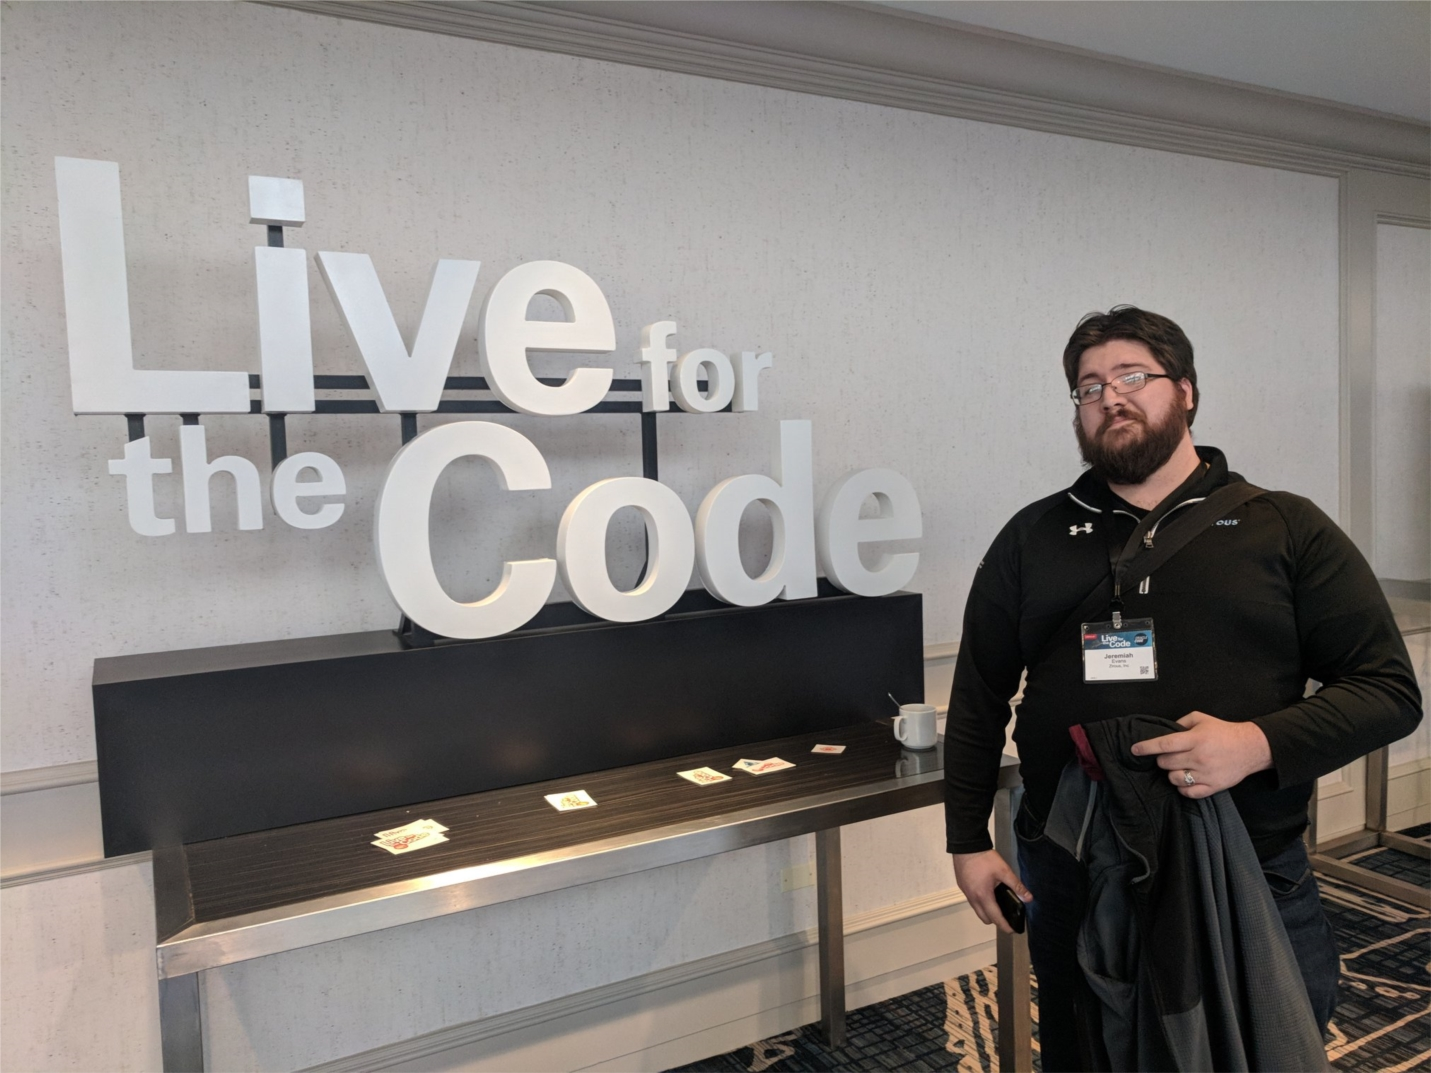 Director of Research & Technology, Jeremiah Evans lives for the code.